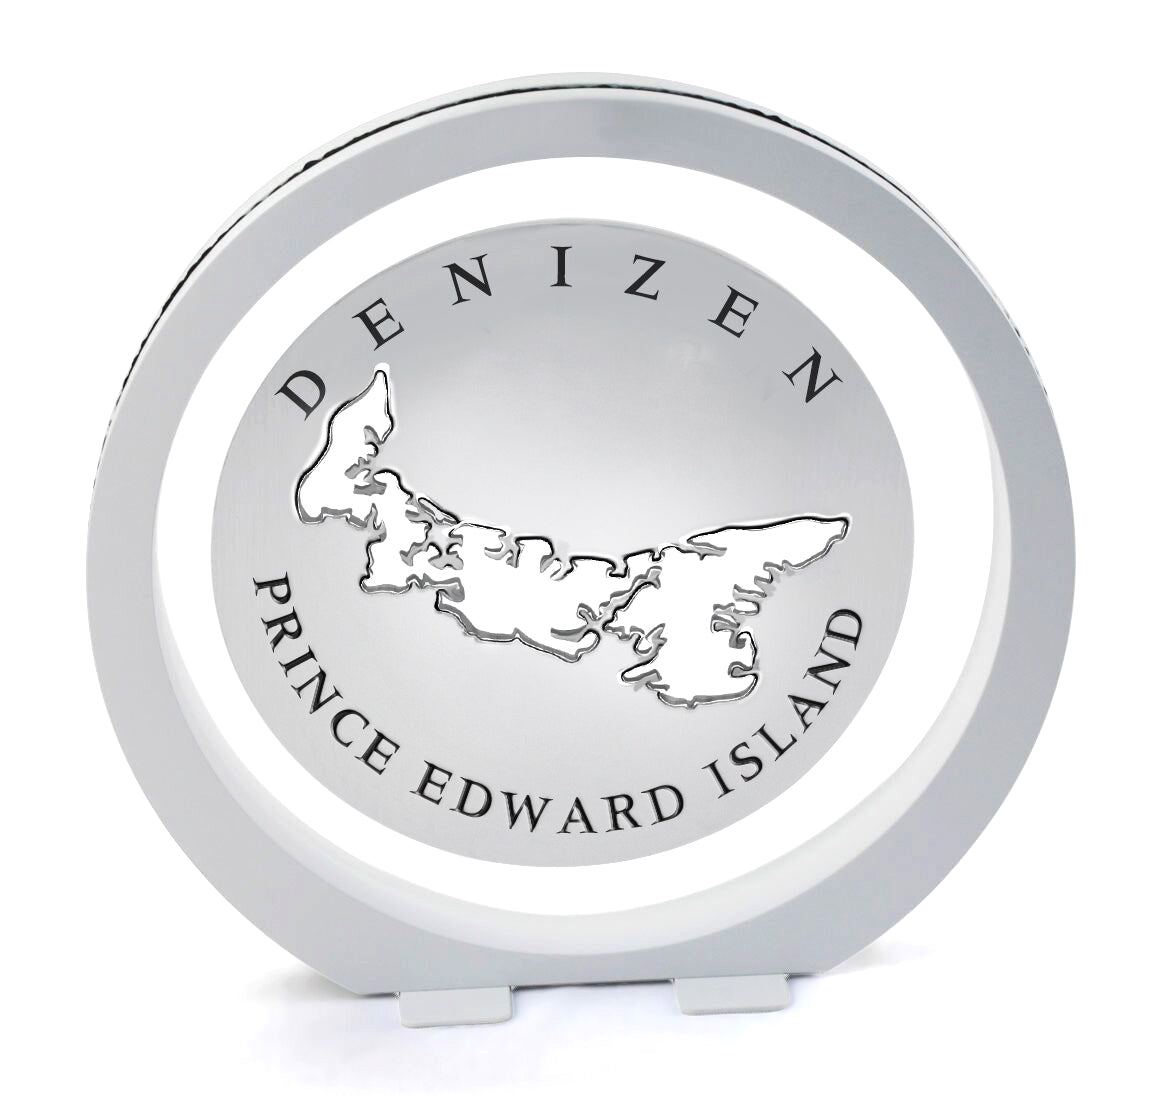 denizen disc display prince edward island